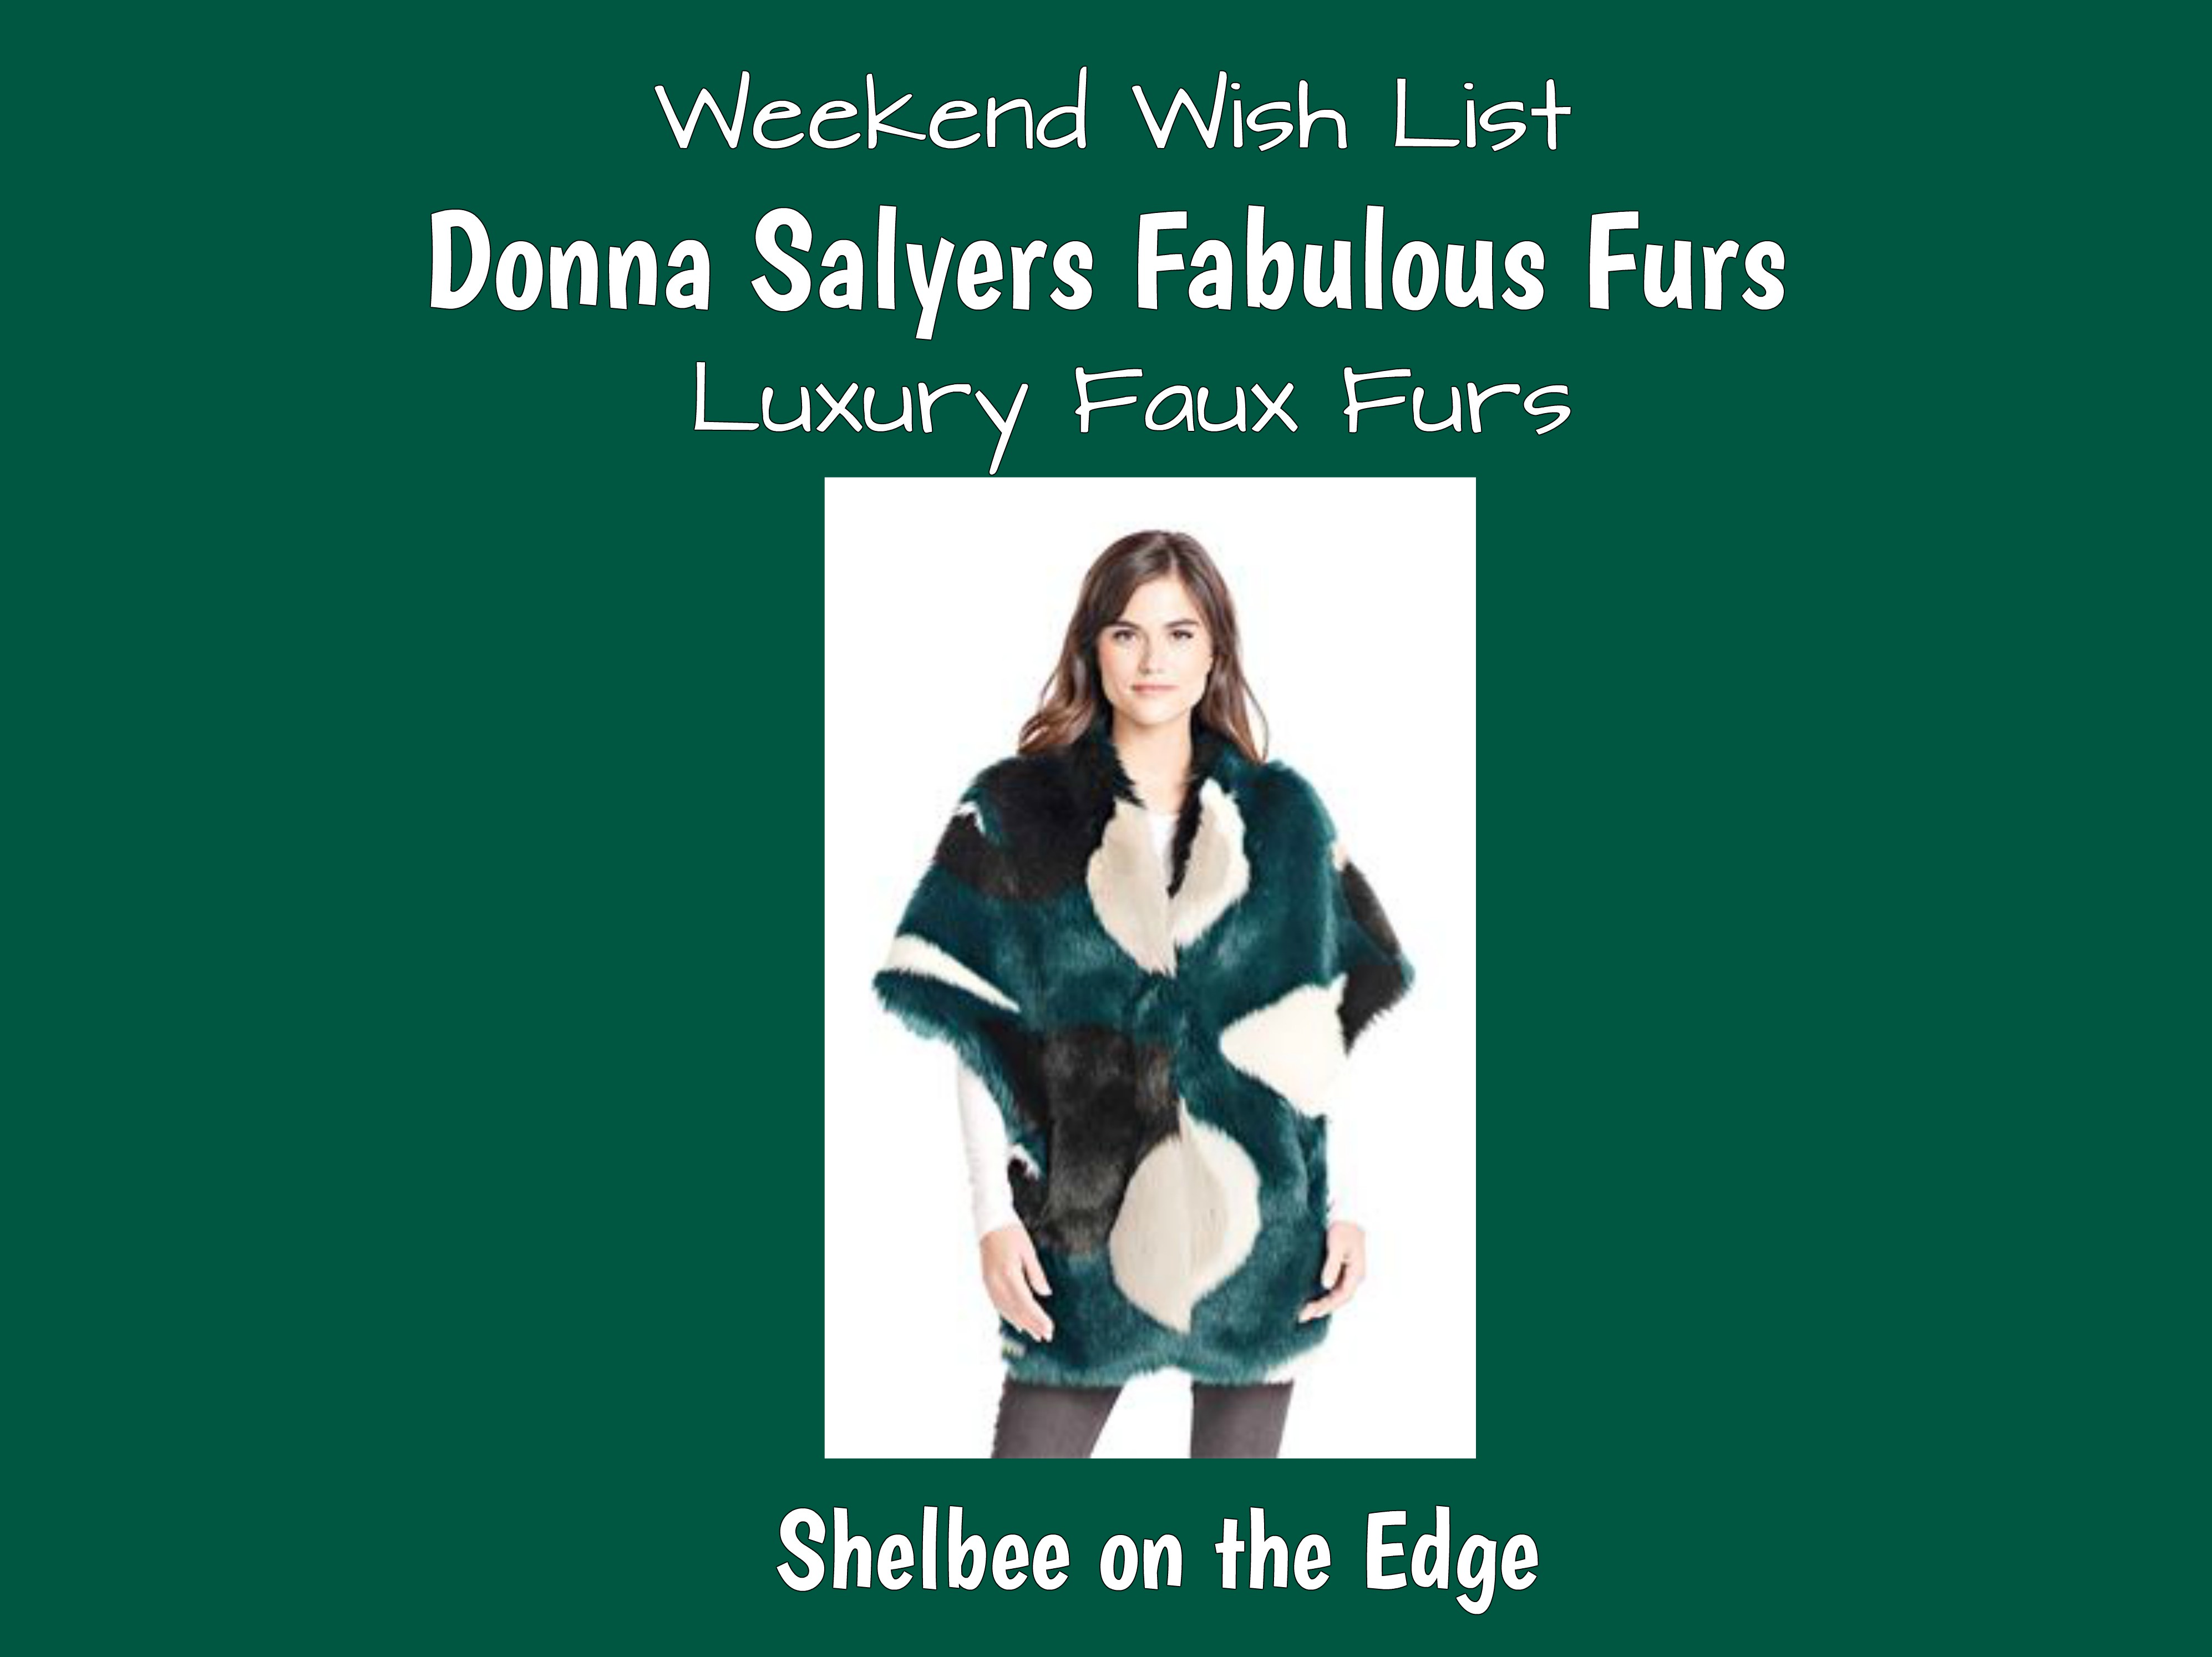 d7f8c51b90ff Weekend Wish List  Donna Salyers Fabulous Furs (Luxury Faux Furs ...